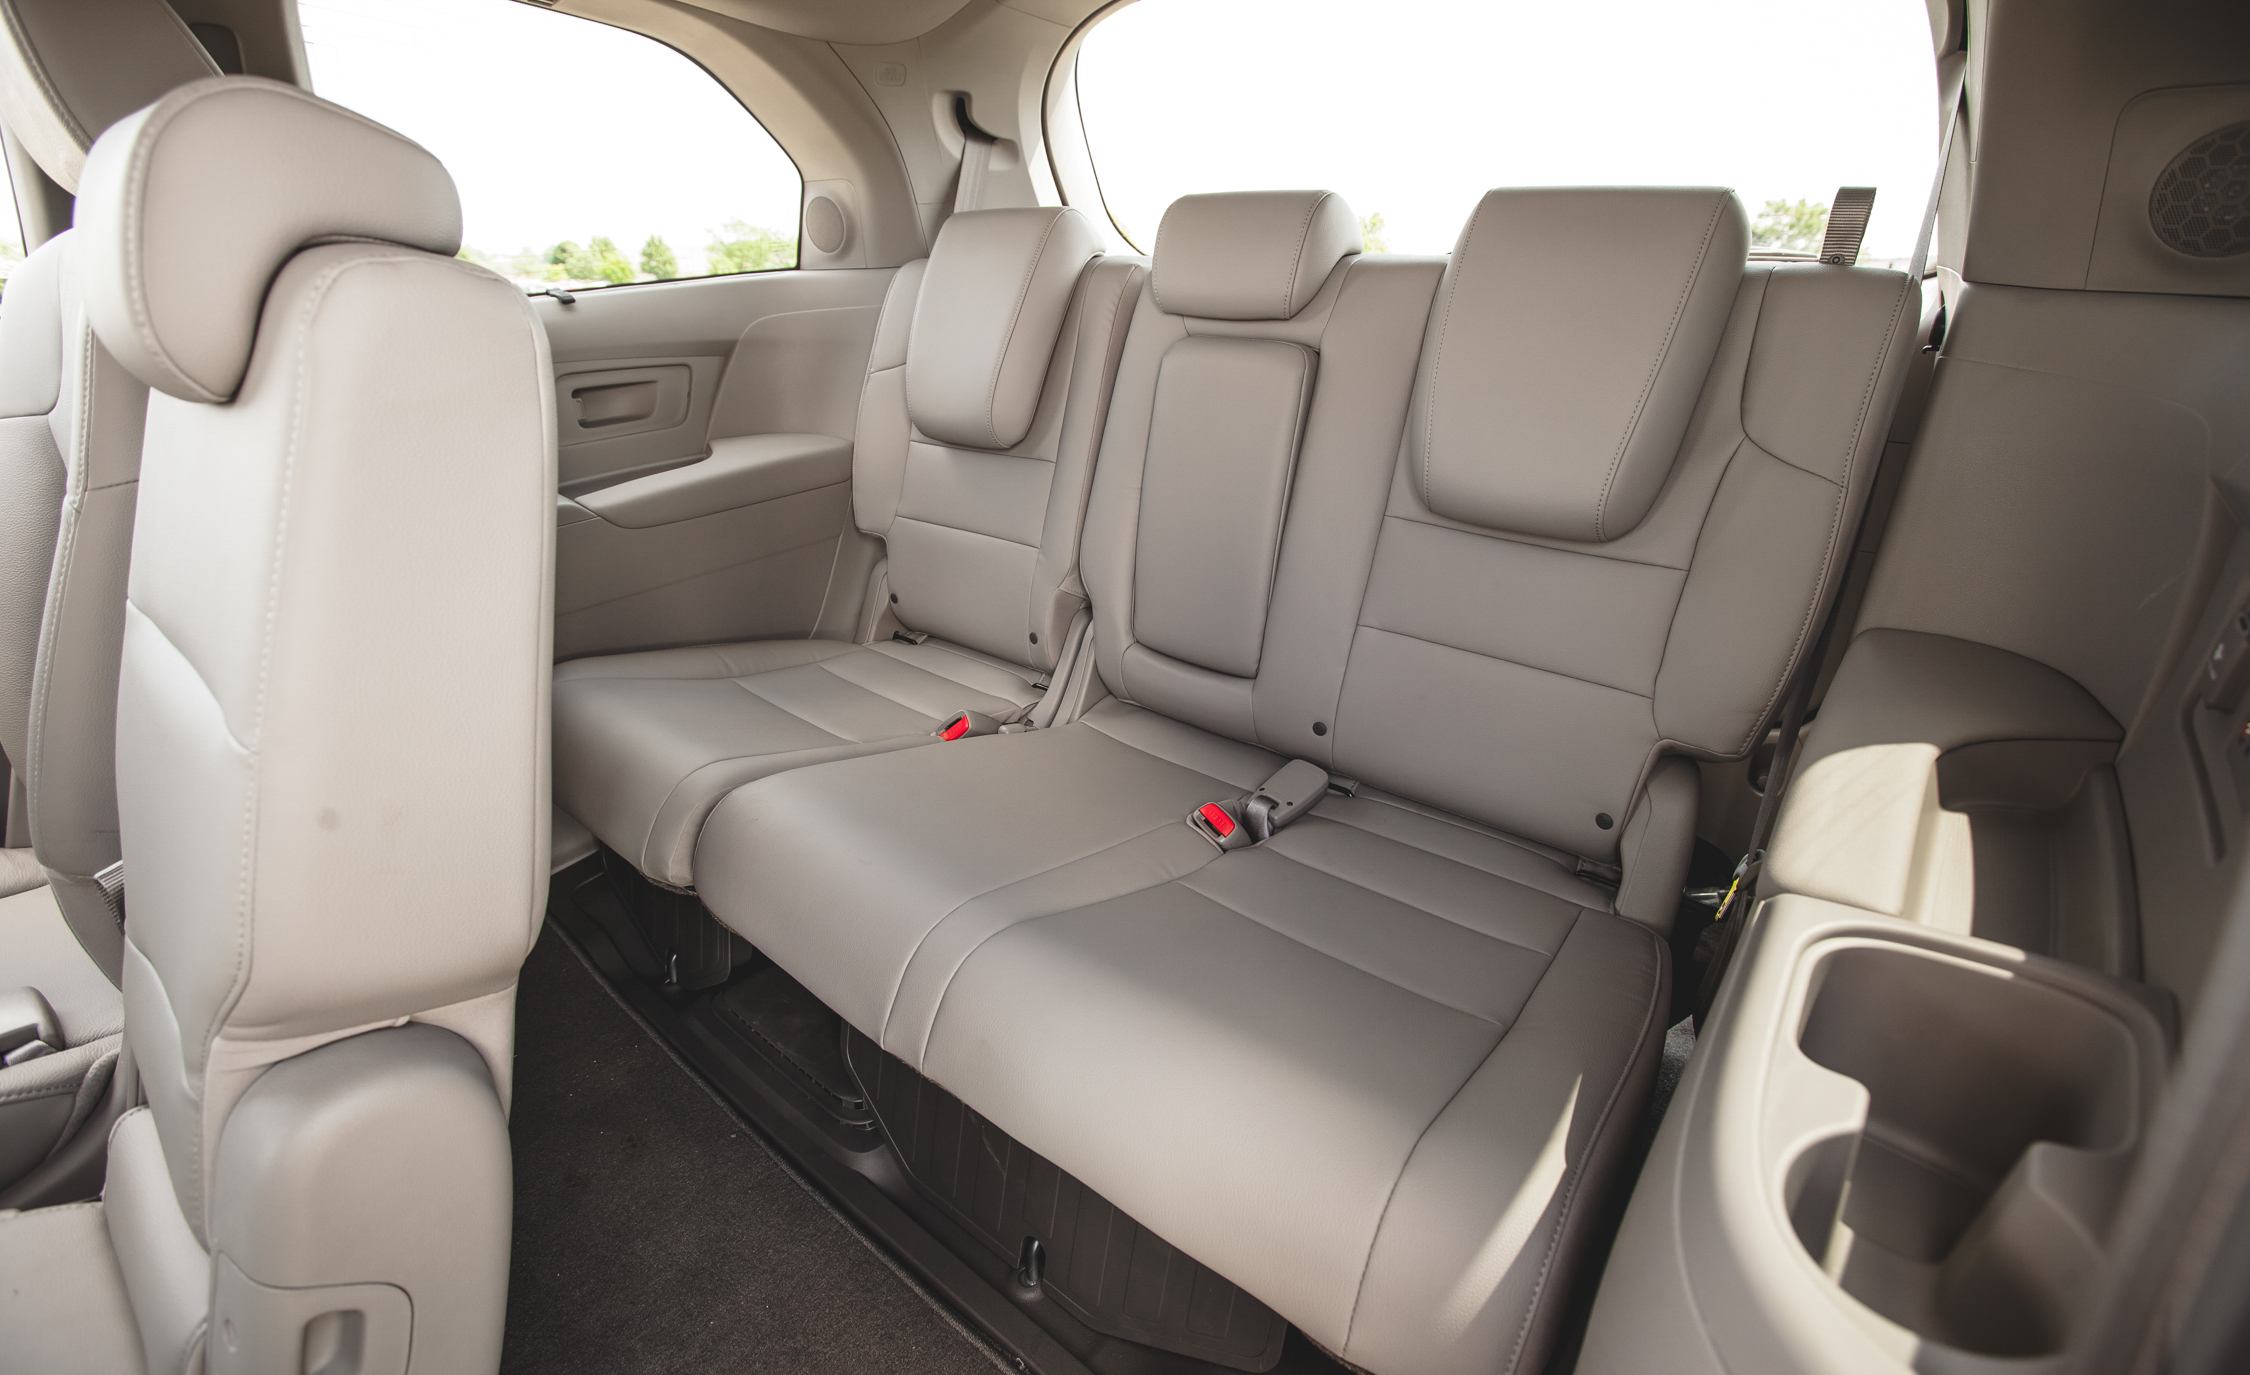 2014 Honda Odyssey Touring Elite Interior (View 9 of 19)